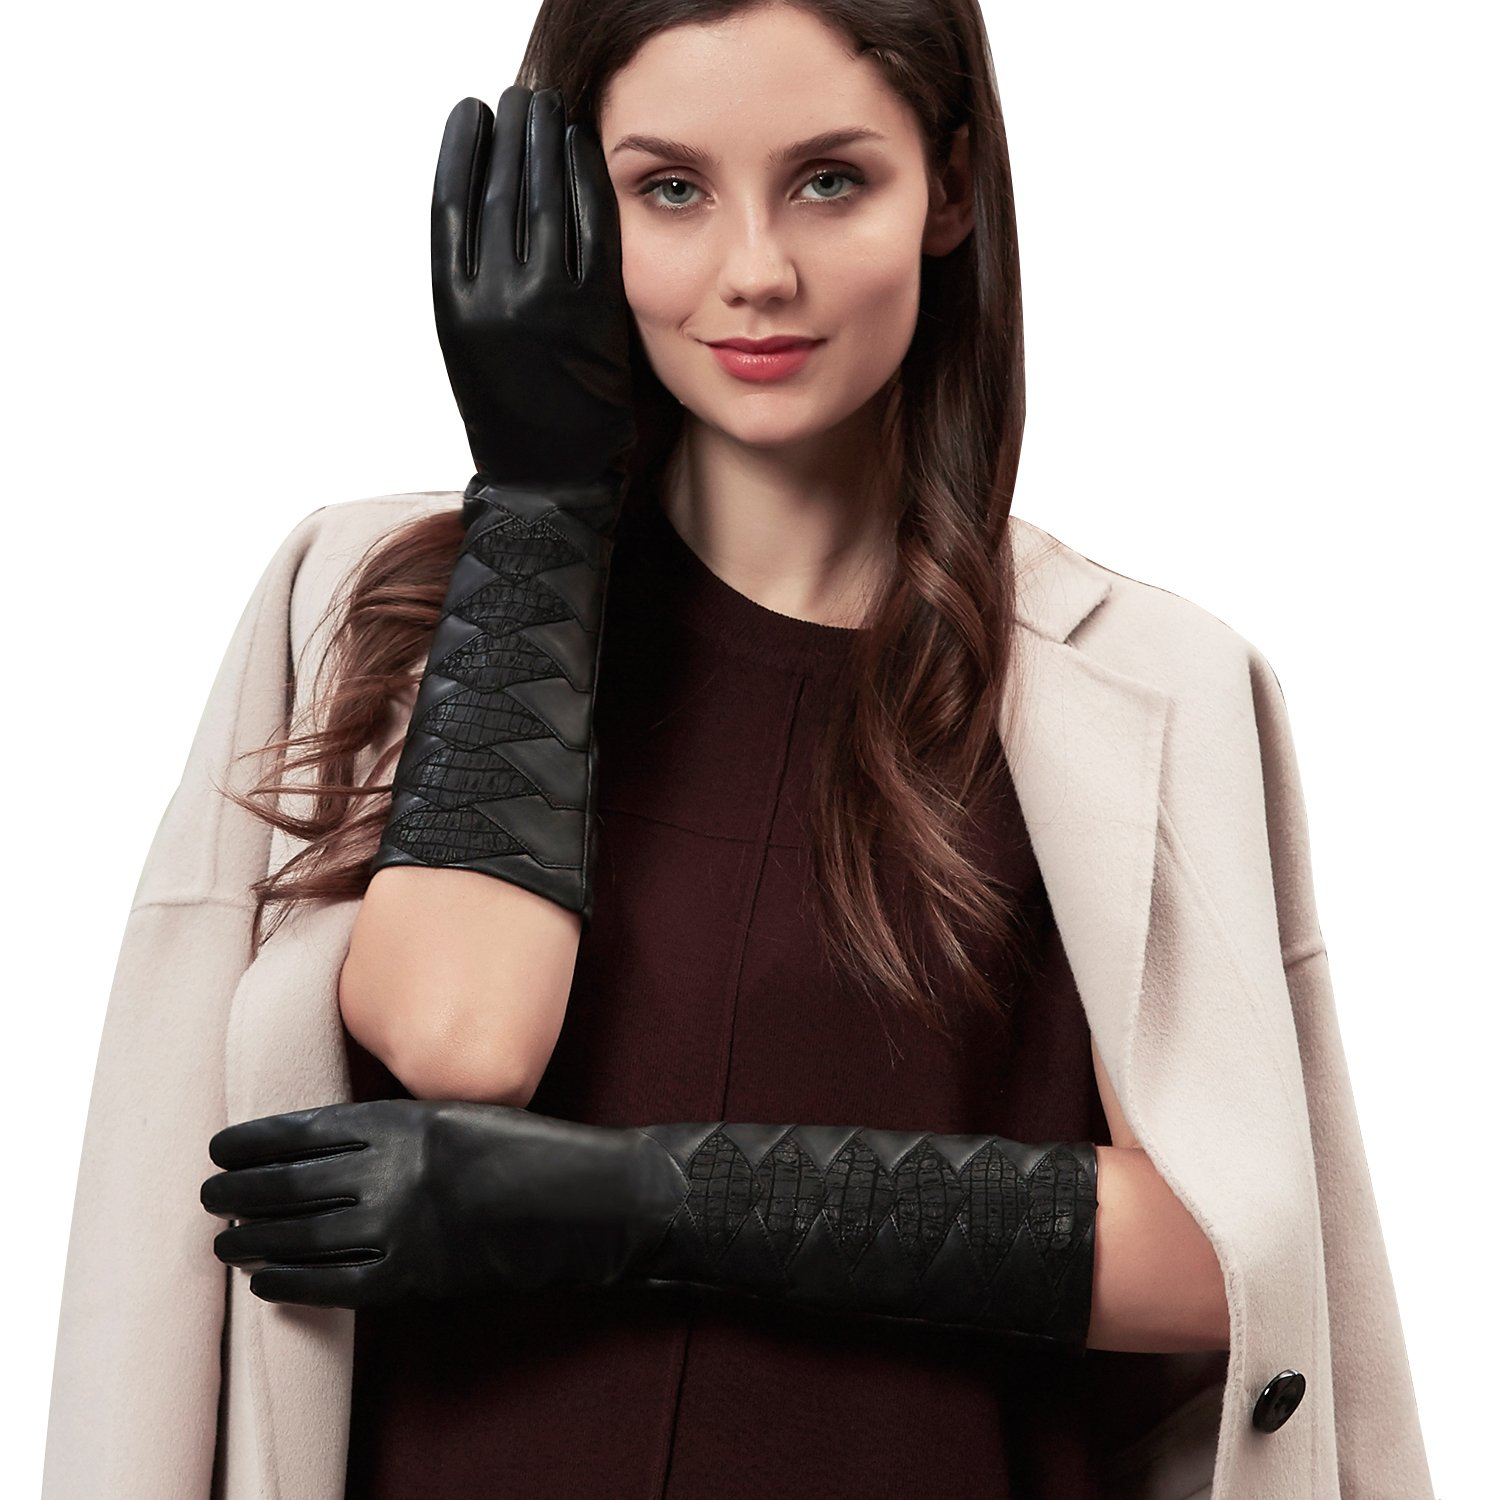 GSG Womens Diamond Patterned Touchscreen Elbow Gloves Genuine Leather Long Evening Gloves Winter Dress Accessory Snake 8